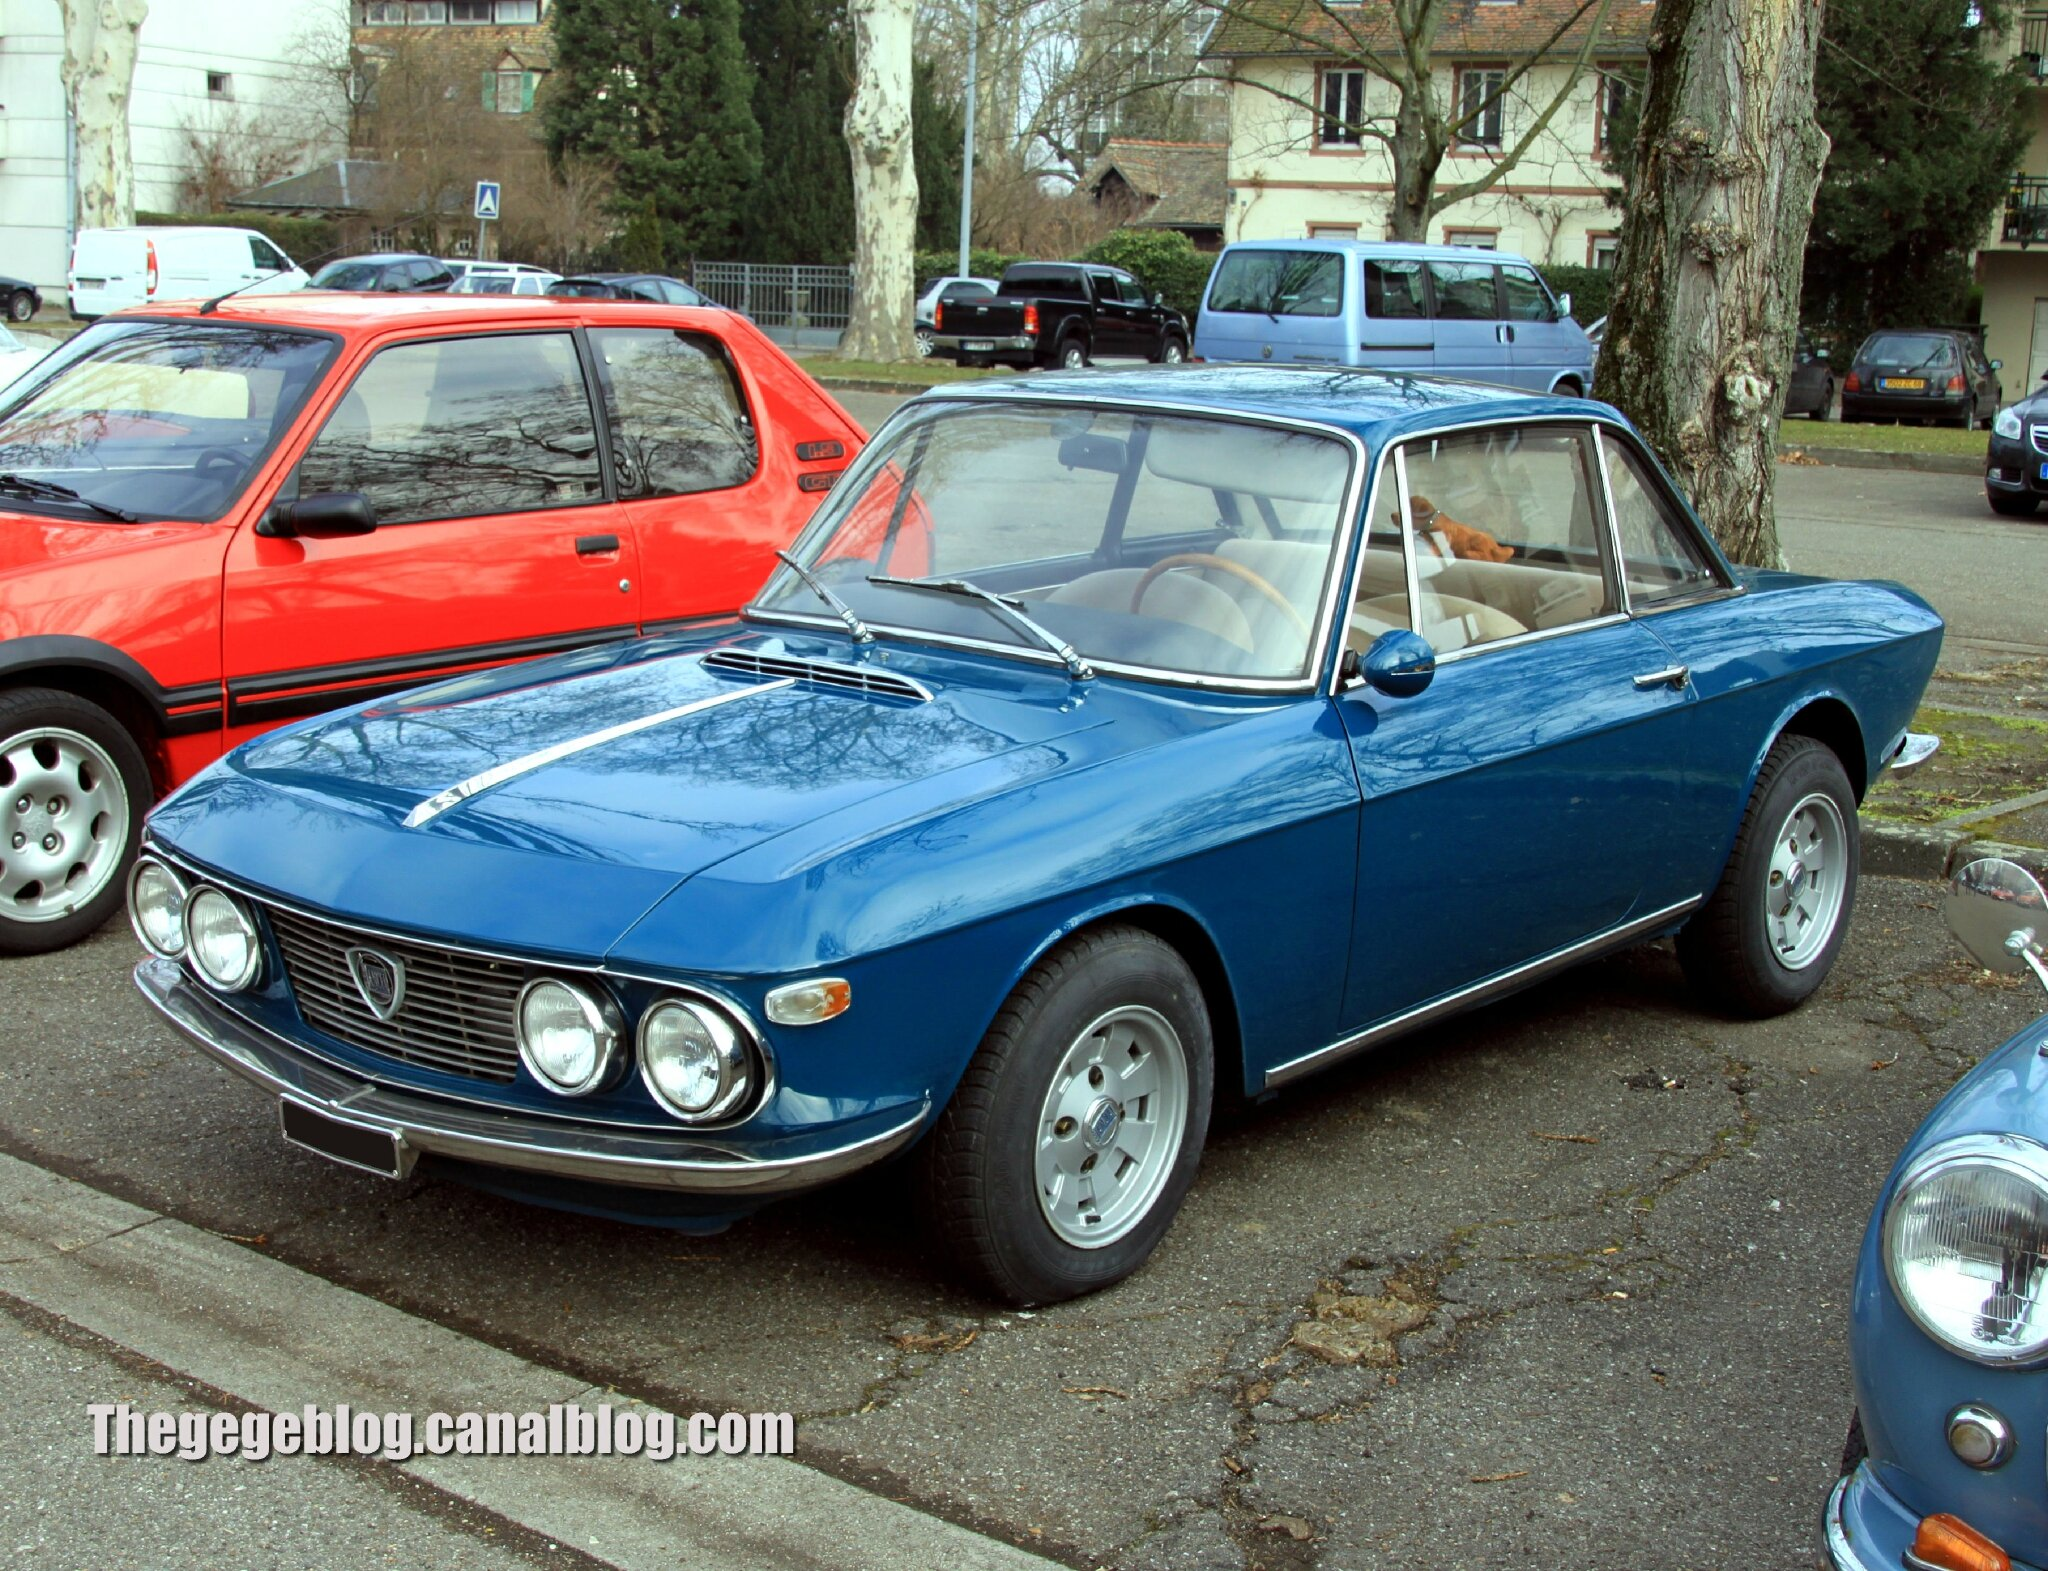 Lancia fulvia coup 12 srie 11965 1967retrorencard mars lancia fulvia coup 12 srie 11965 1967retrorencard mars 2013 vanachro Image collections